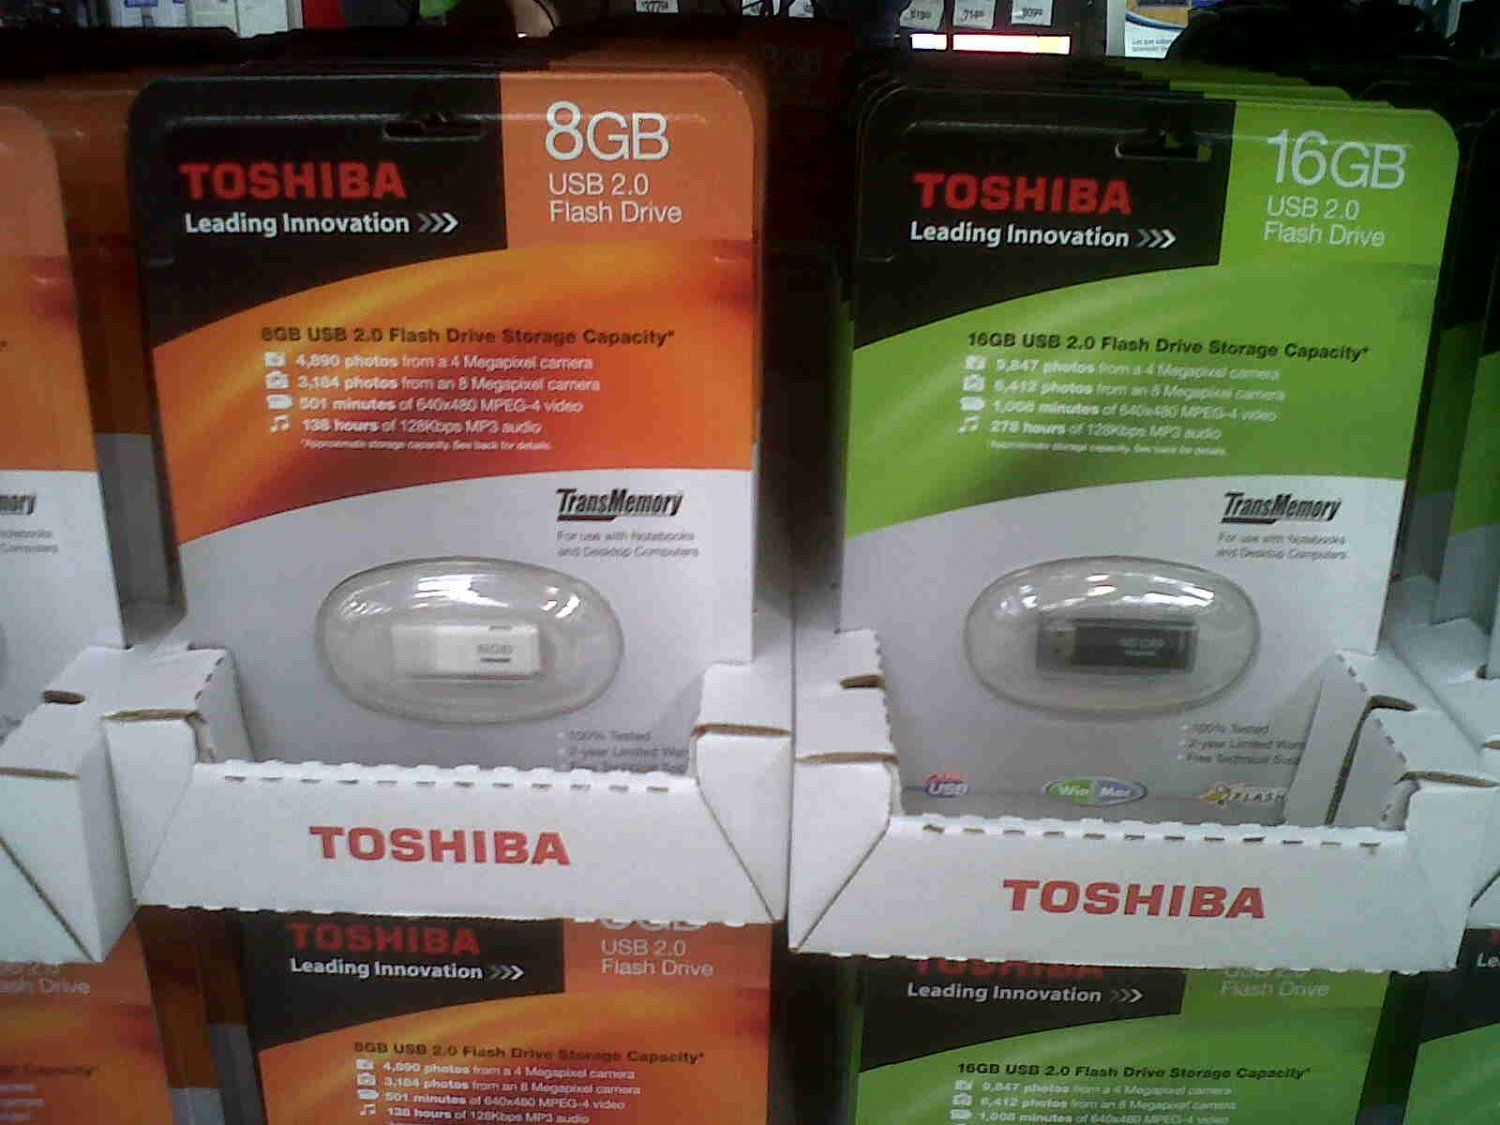 Toshiba USB 2.0 Flash Drive